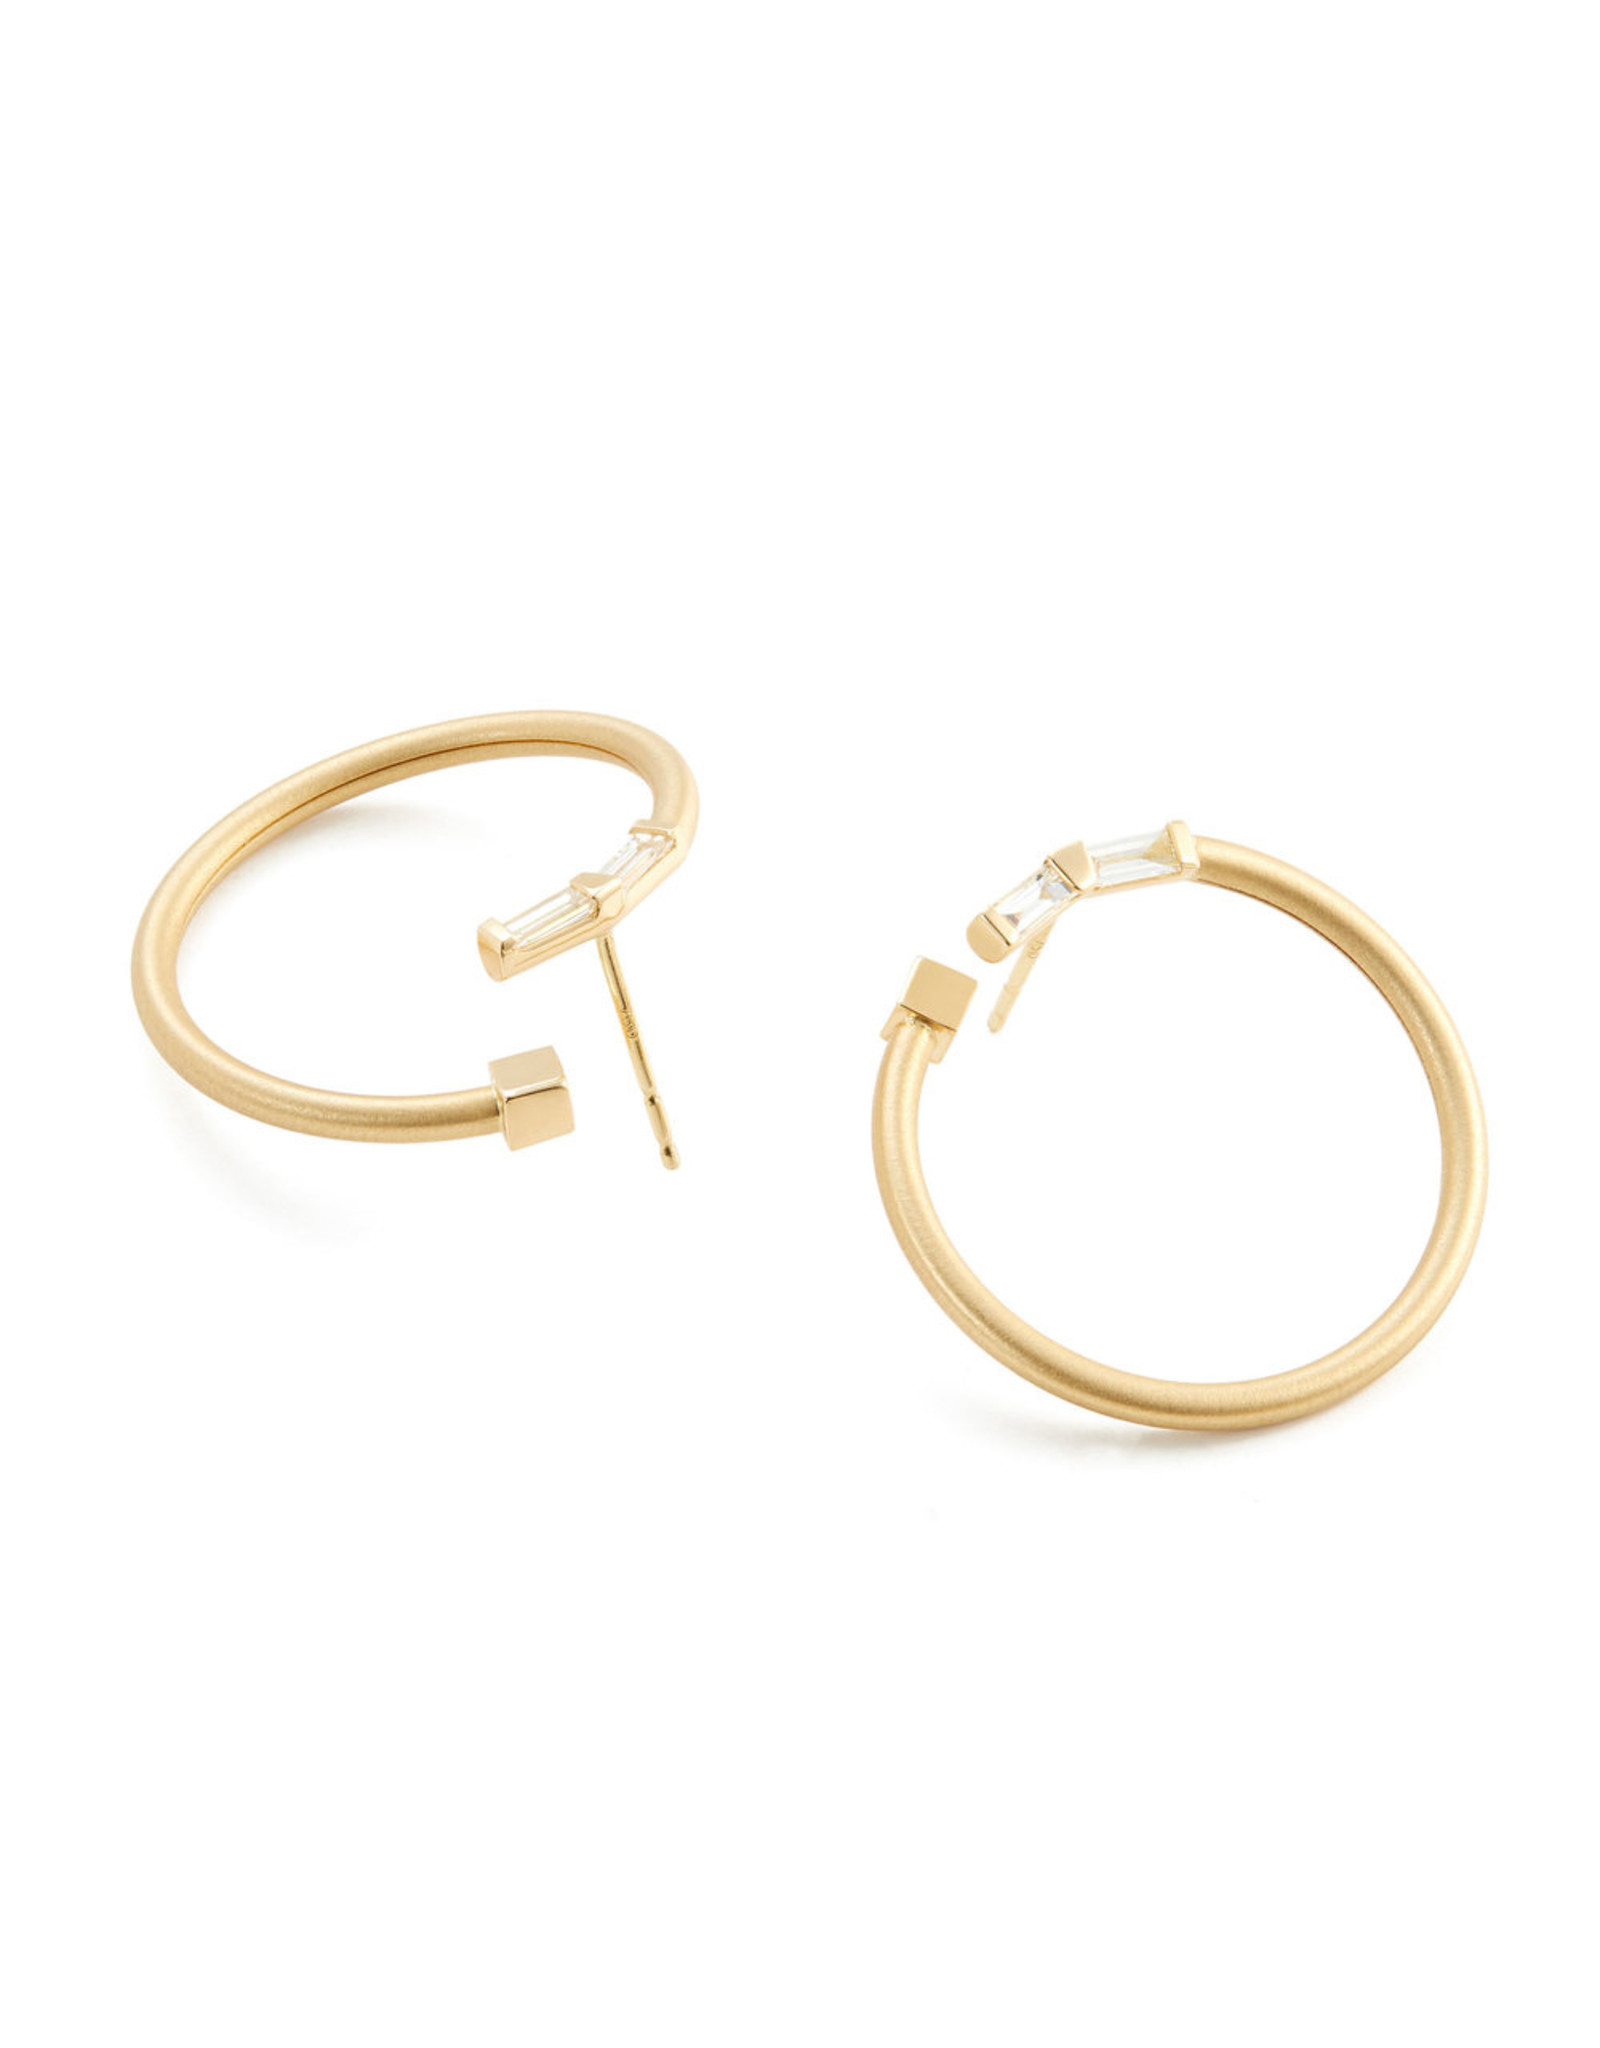 Nak Armstrong Nak Armstrong Bezel Bypass Diamond Hoops (Color: White Diamond)